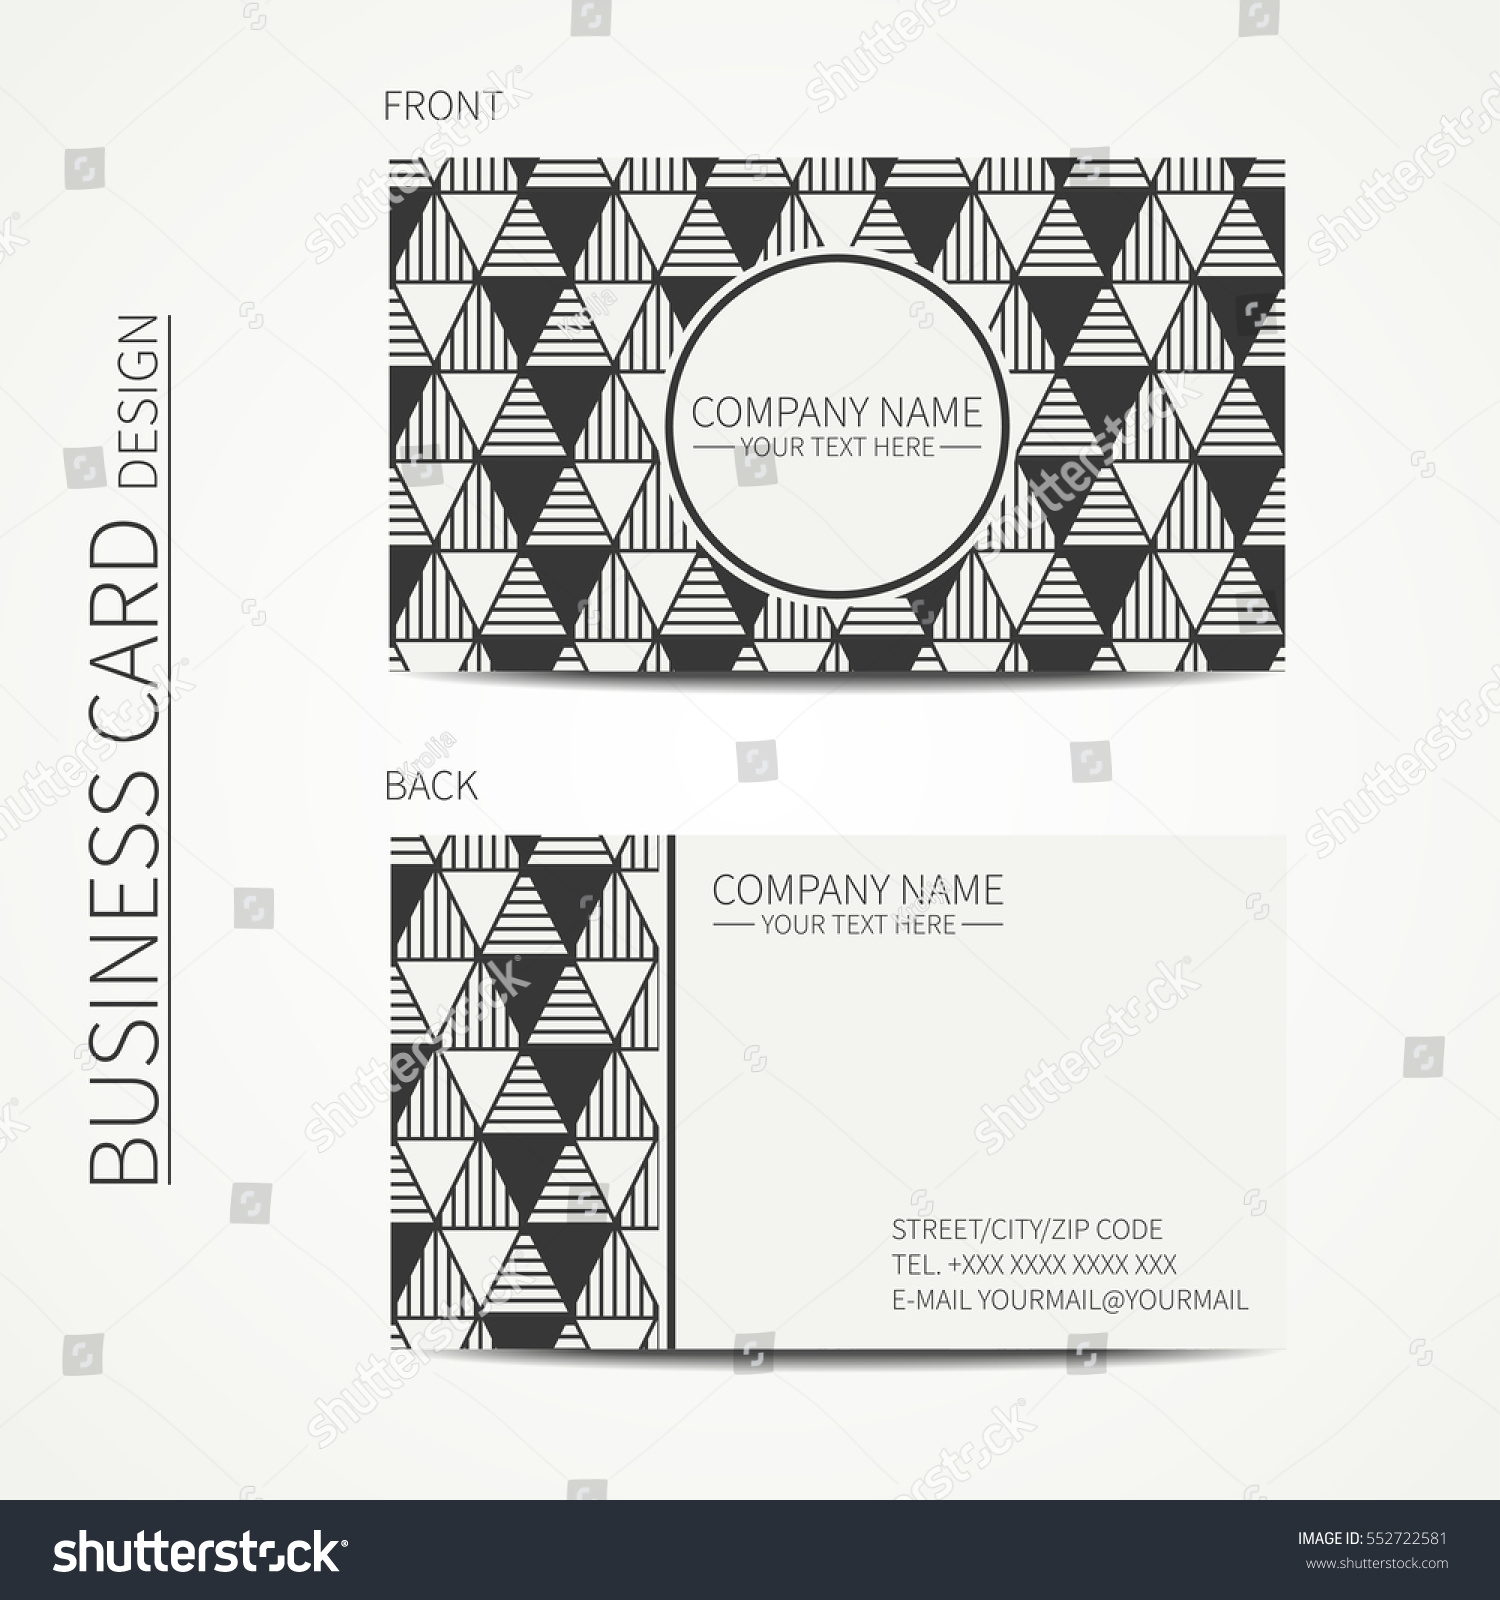 Delta Business Card Choice Image - Free Business Cards